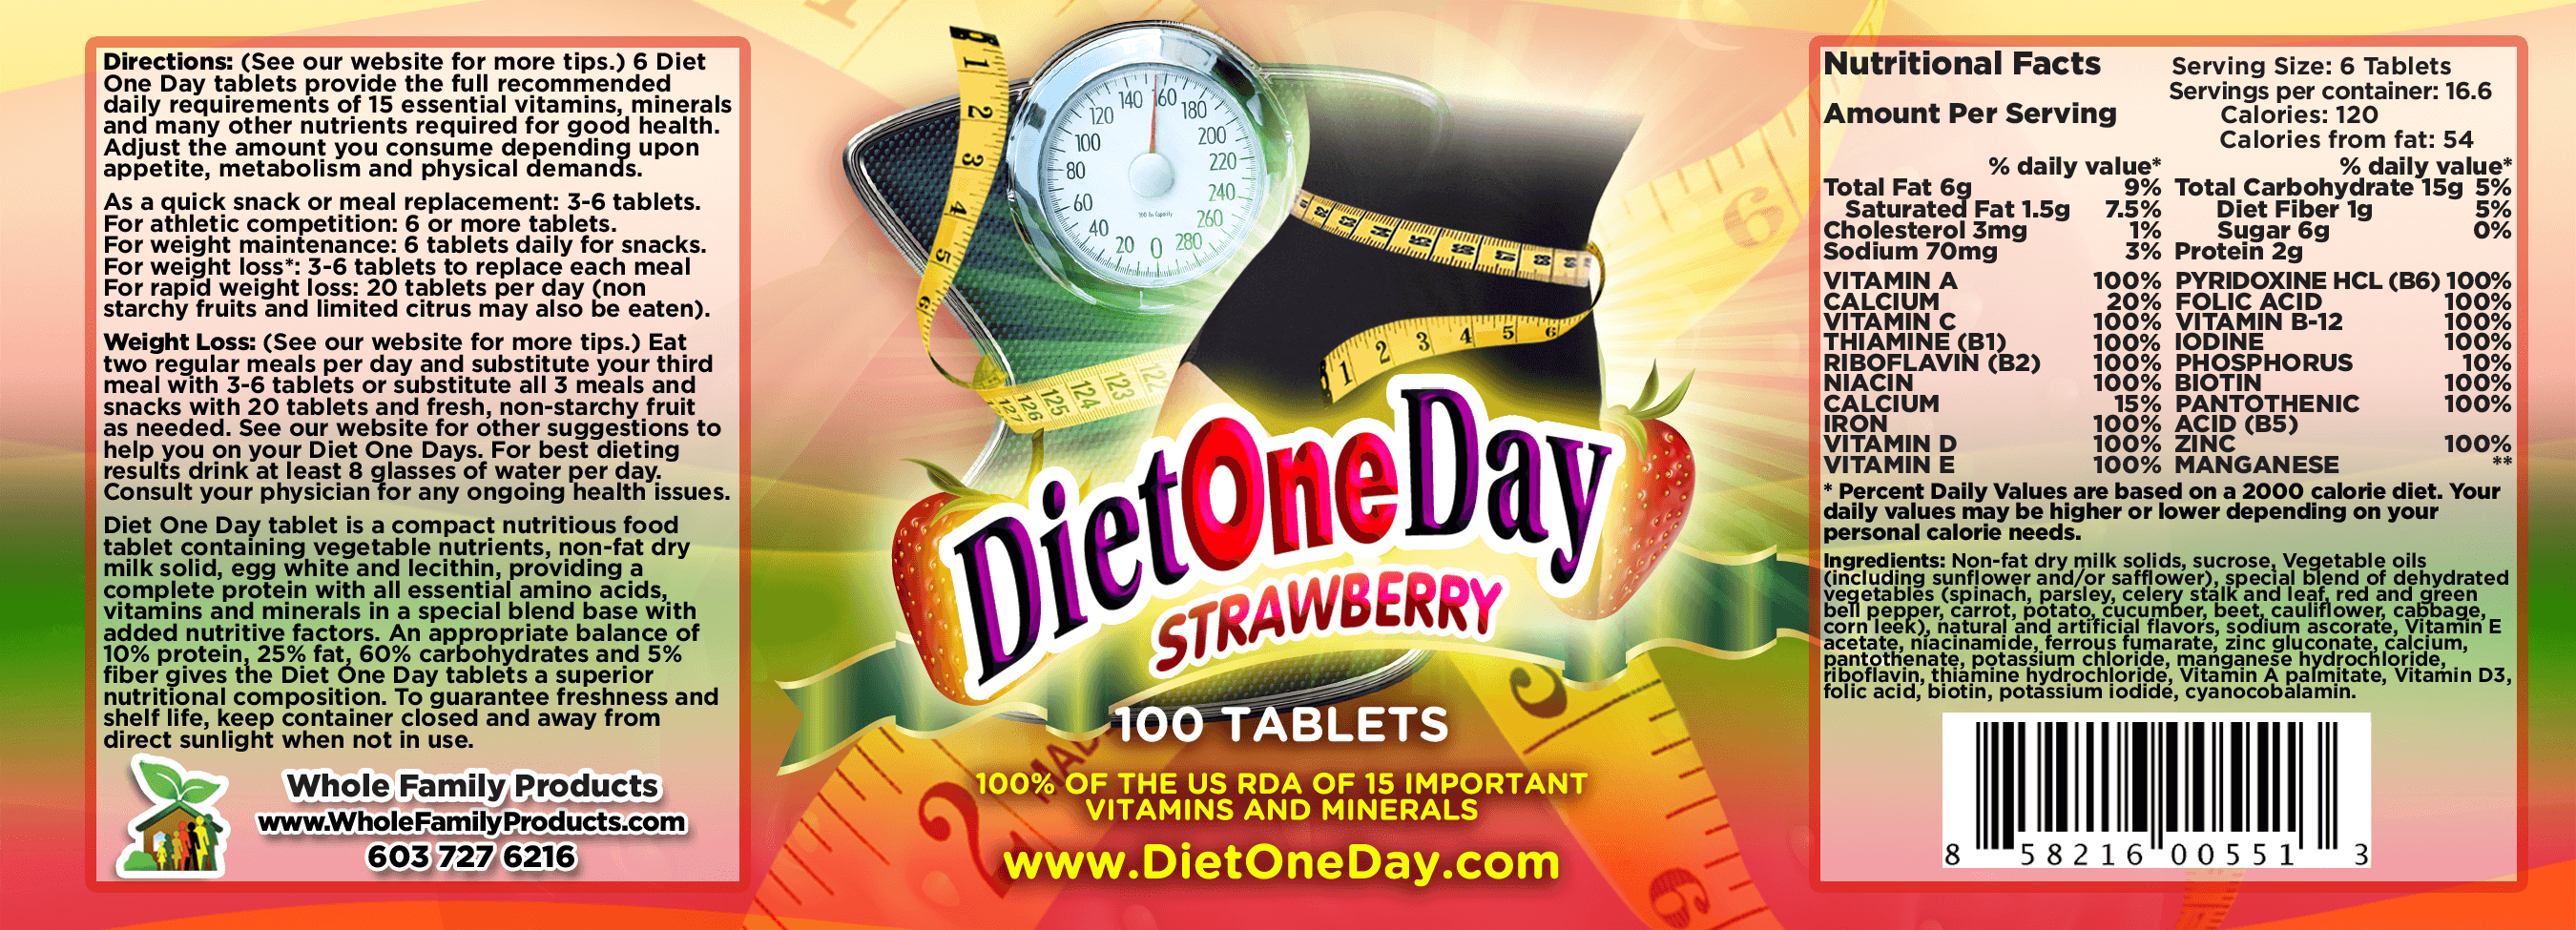 Diet One Day Wafers Strawberry 100ct Product Label